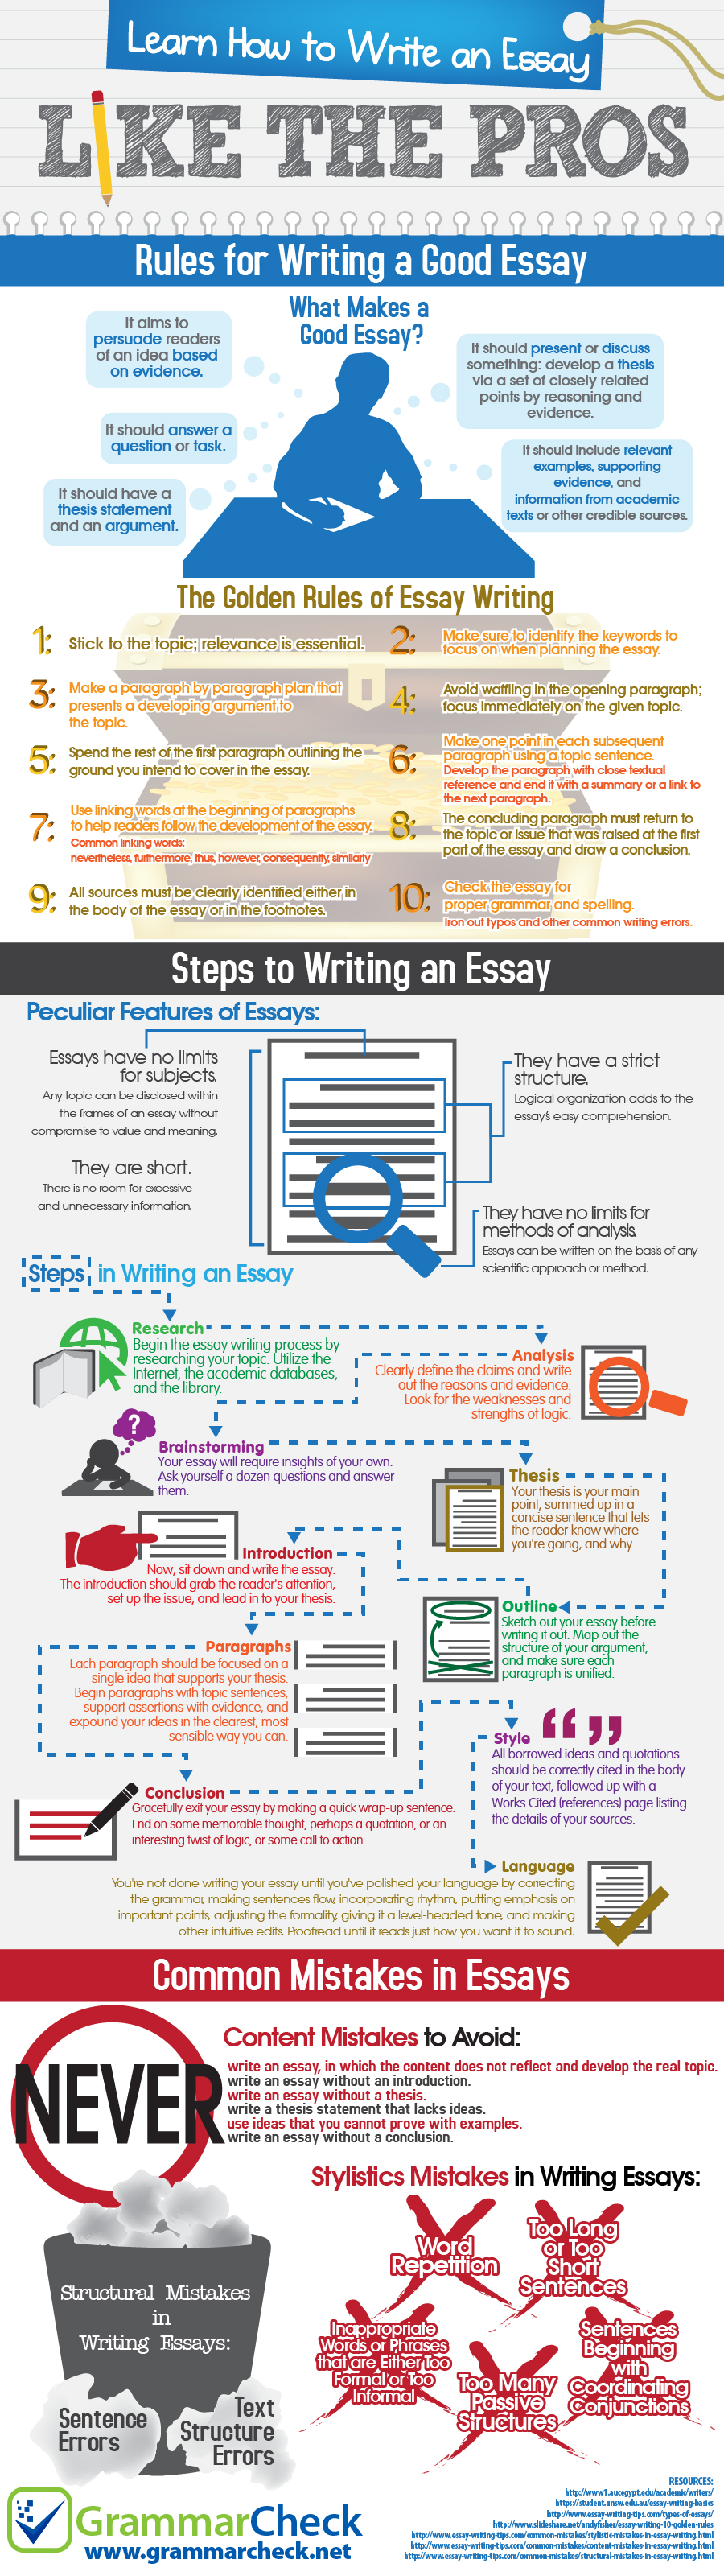 write my essay reviews essay writing reviews essay writing review  essay review service college application essay review service law school essay review service best do my